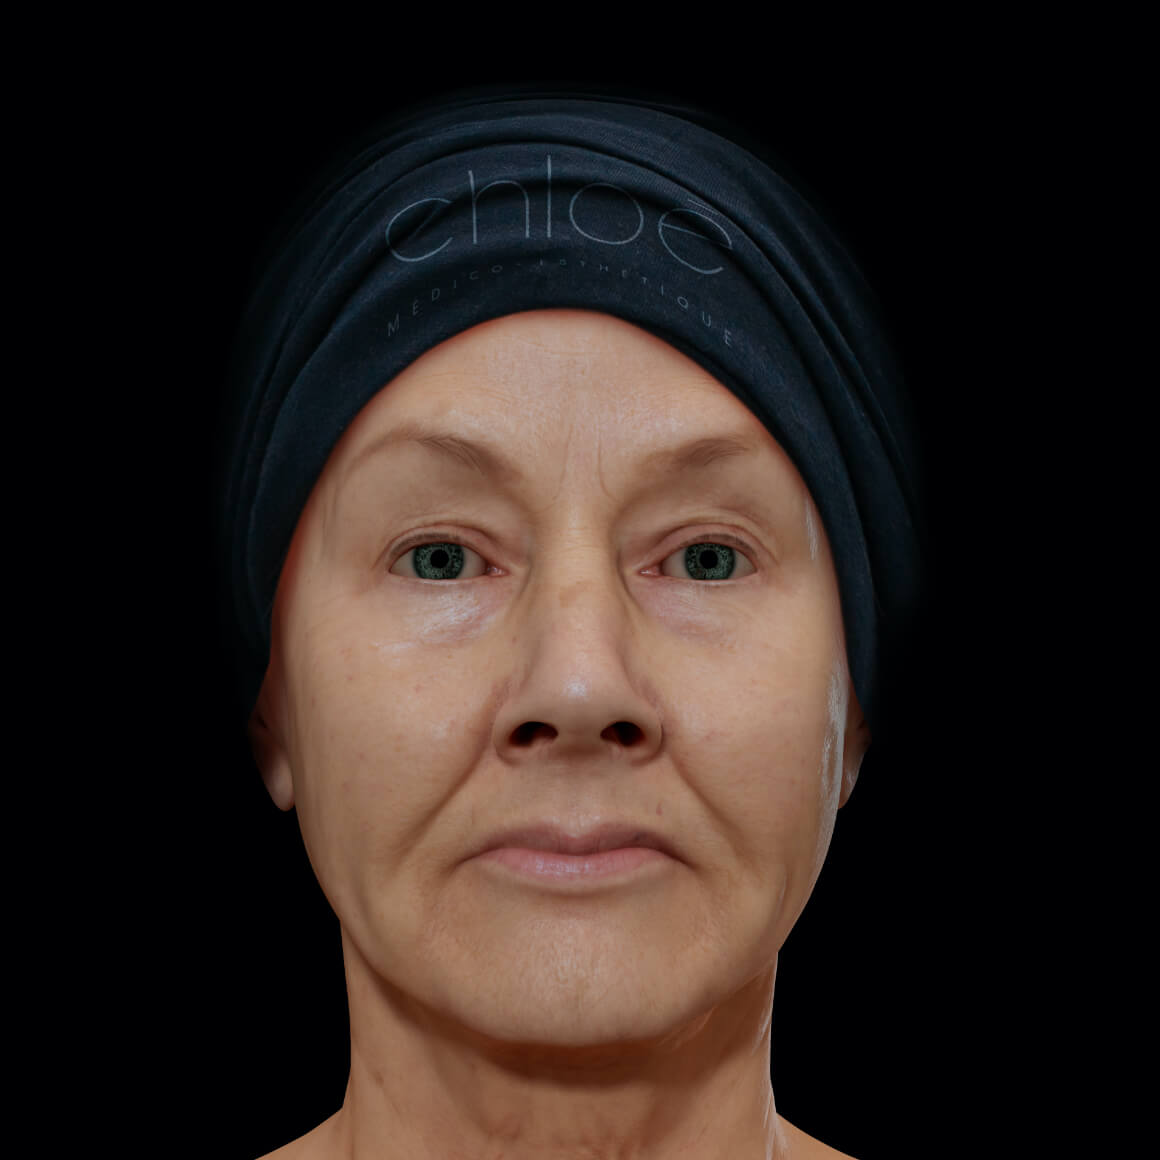 Clinique Chloé female patient facing front showing facial skin laxity, or loss of skin firmness